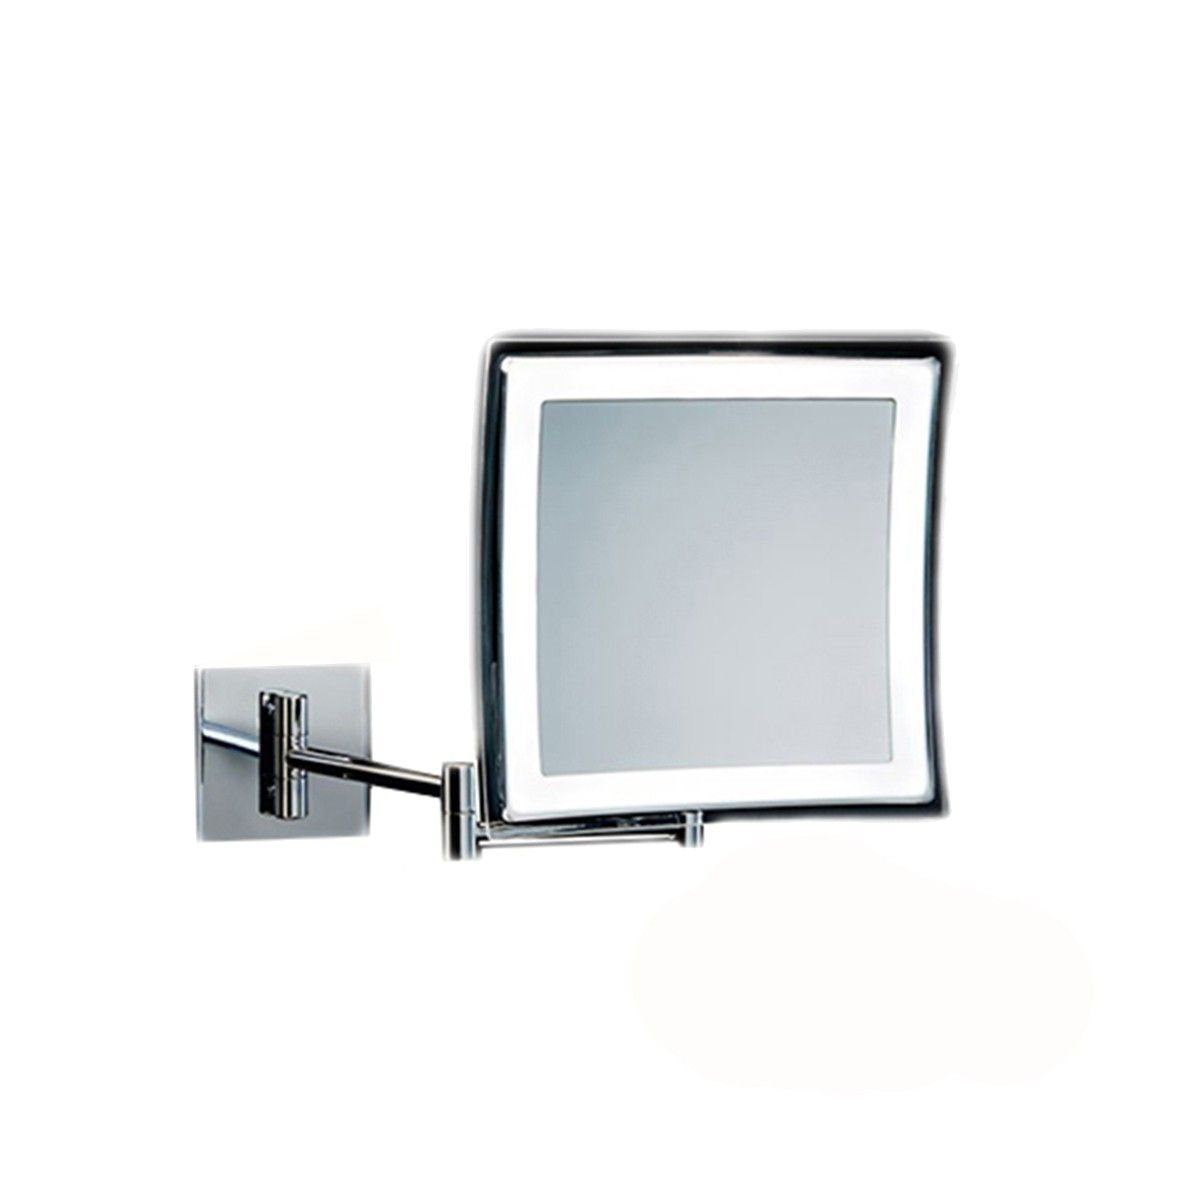 Smile 850 Hard Wired Wall Mounted Magnifying Mirror 5x Wall Mounted Makeup Mirror Wall Mounted Magnifying Mirror Magnifying Mirror